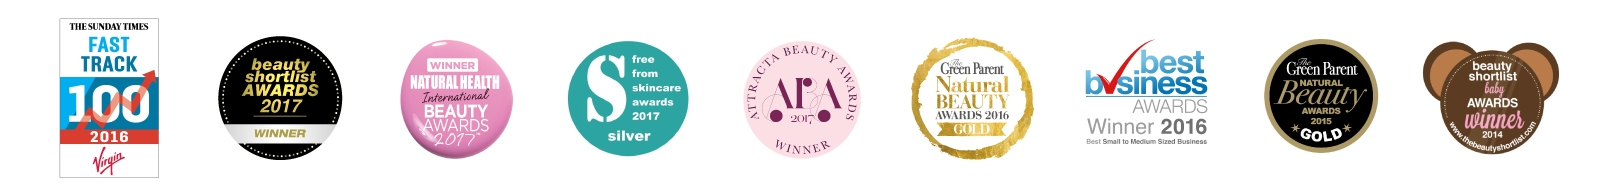 awards that Tropic Skincare have won